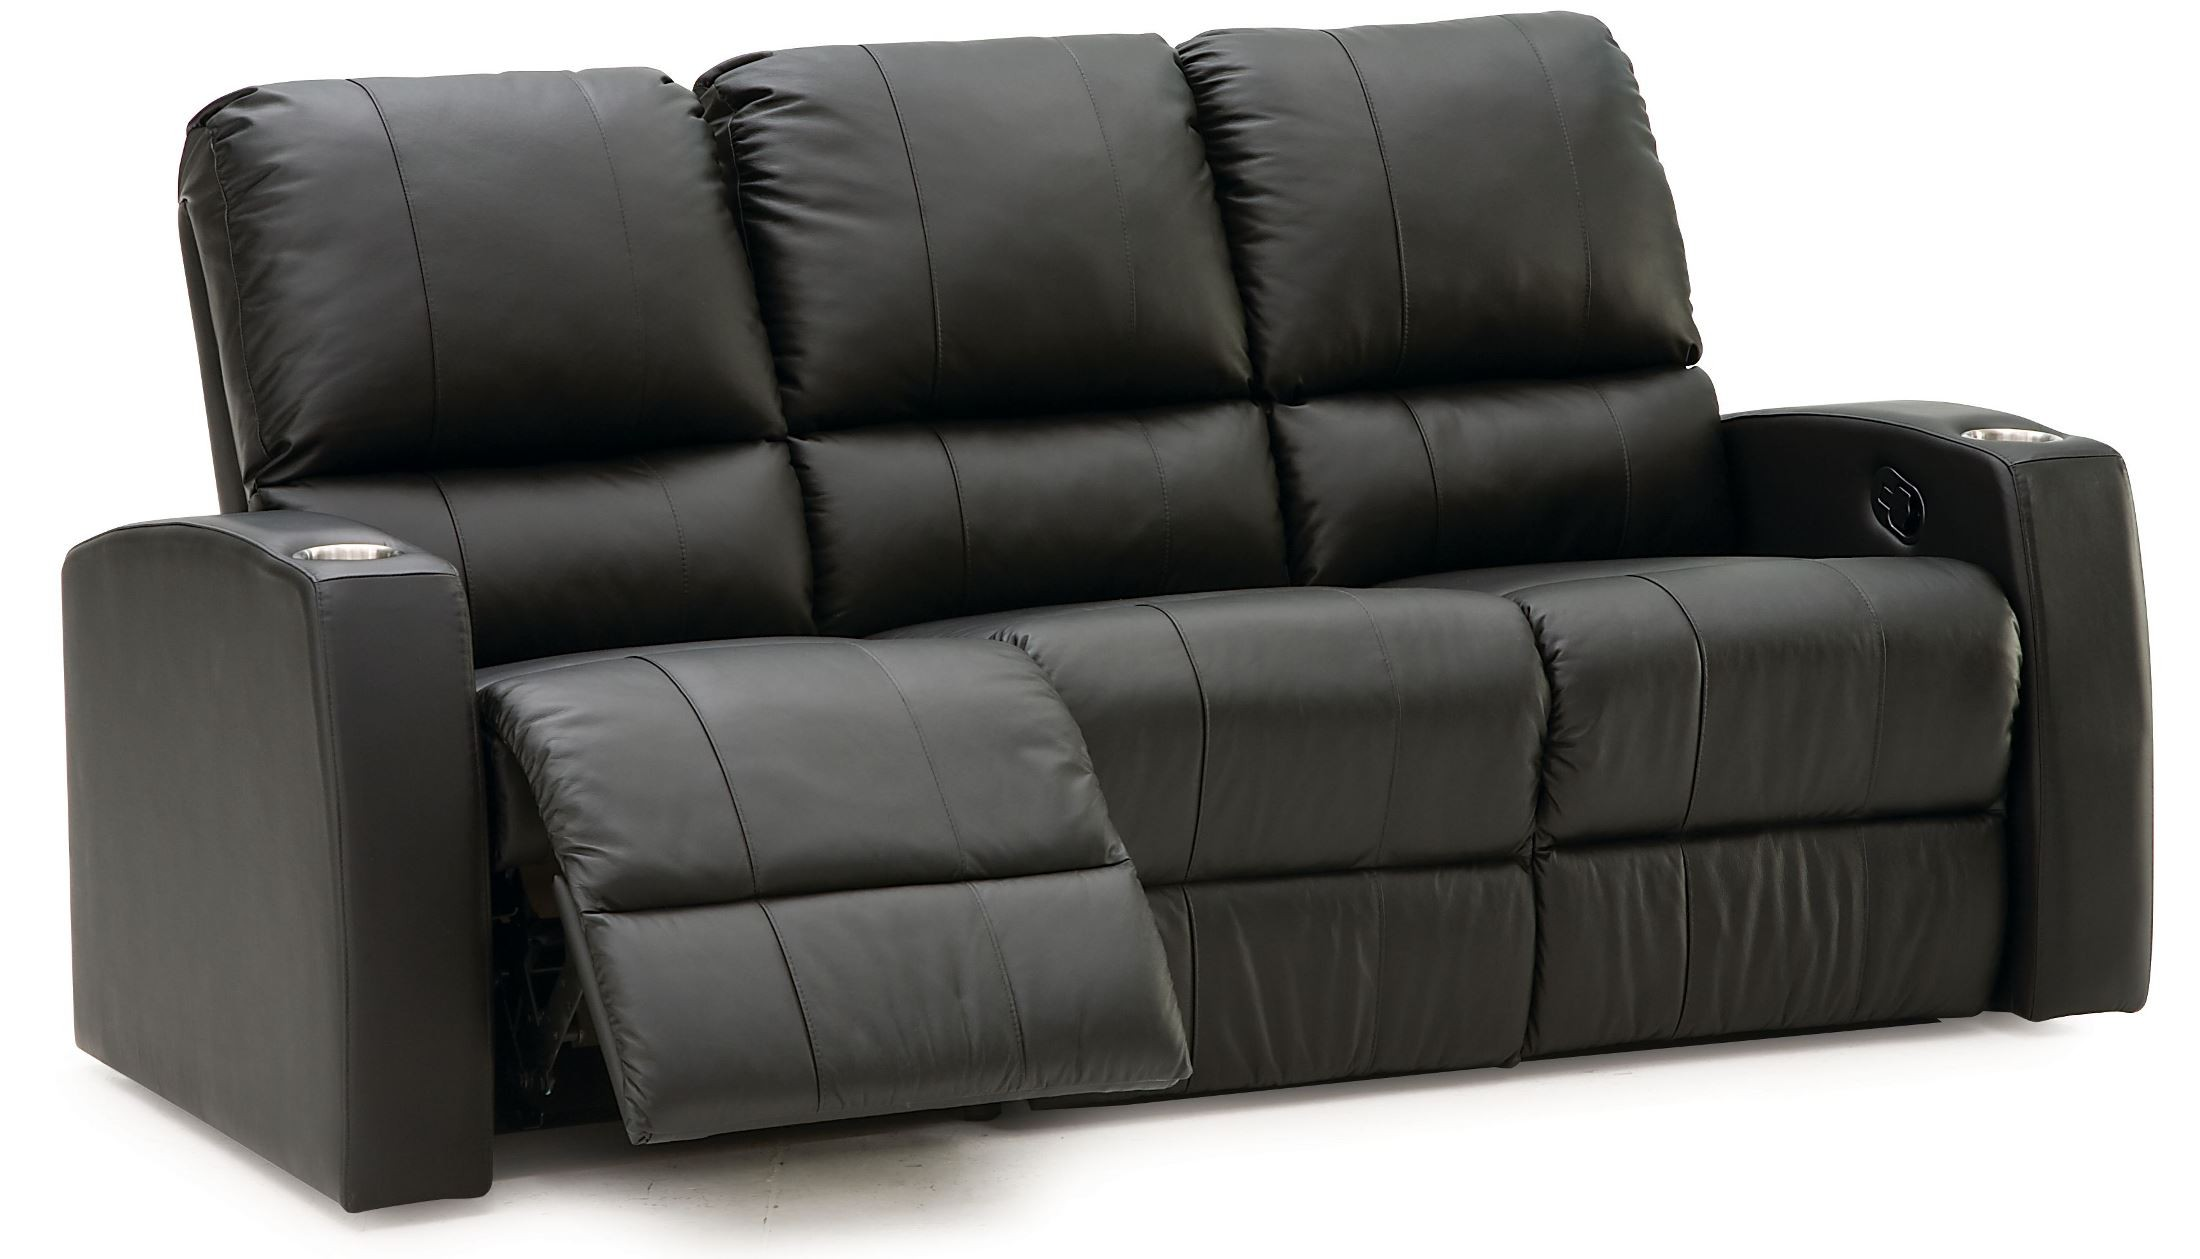 Pacifico Leather Home Theatre Seating Psr 41920 Leather